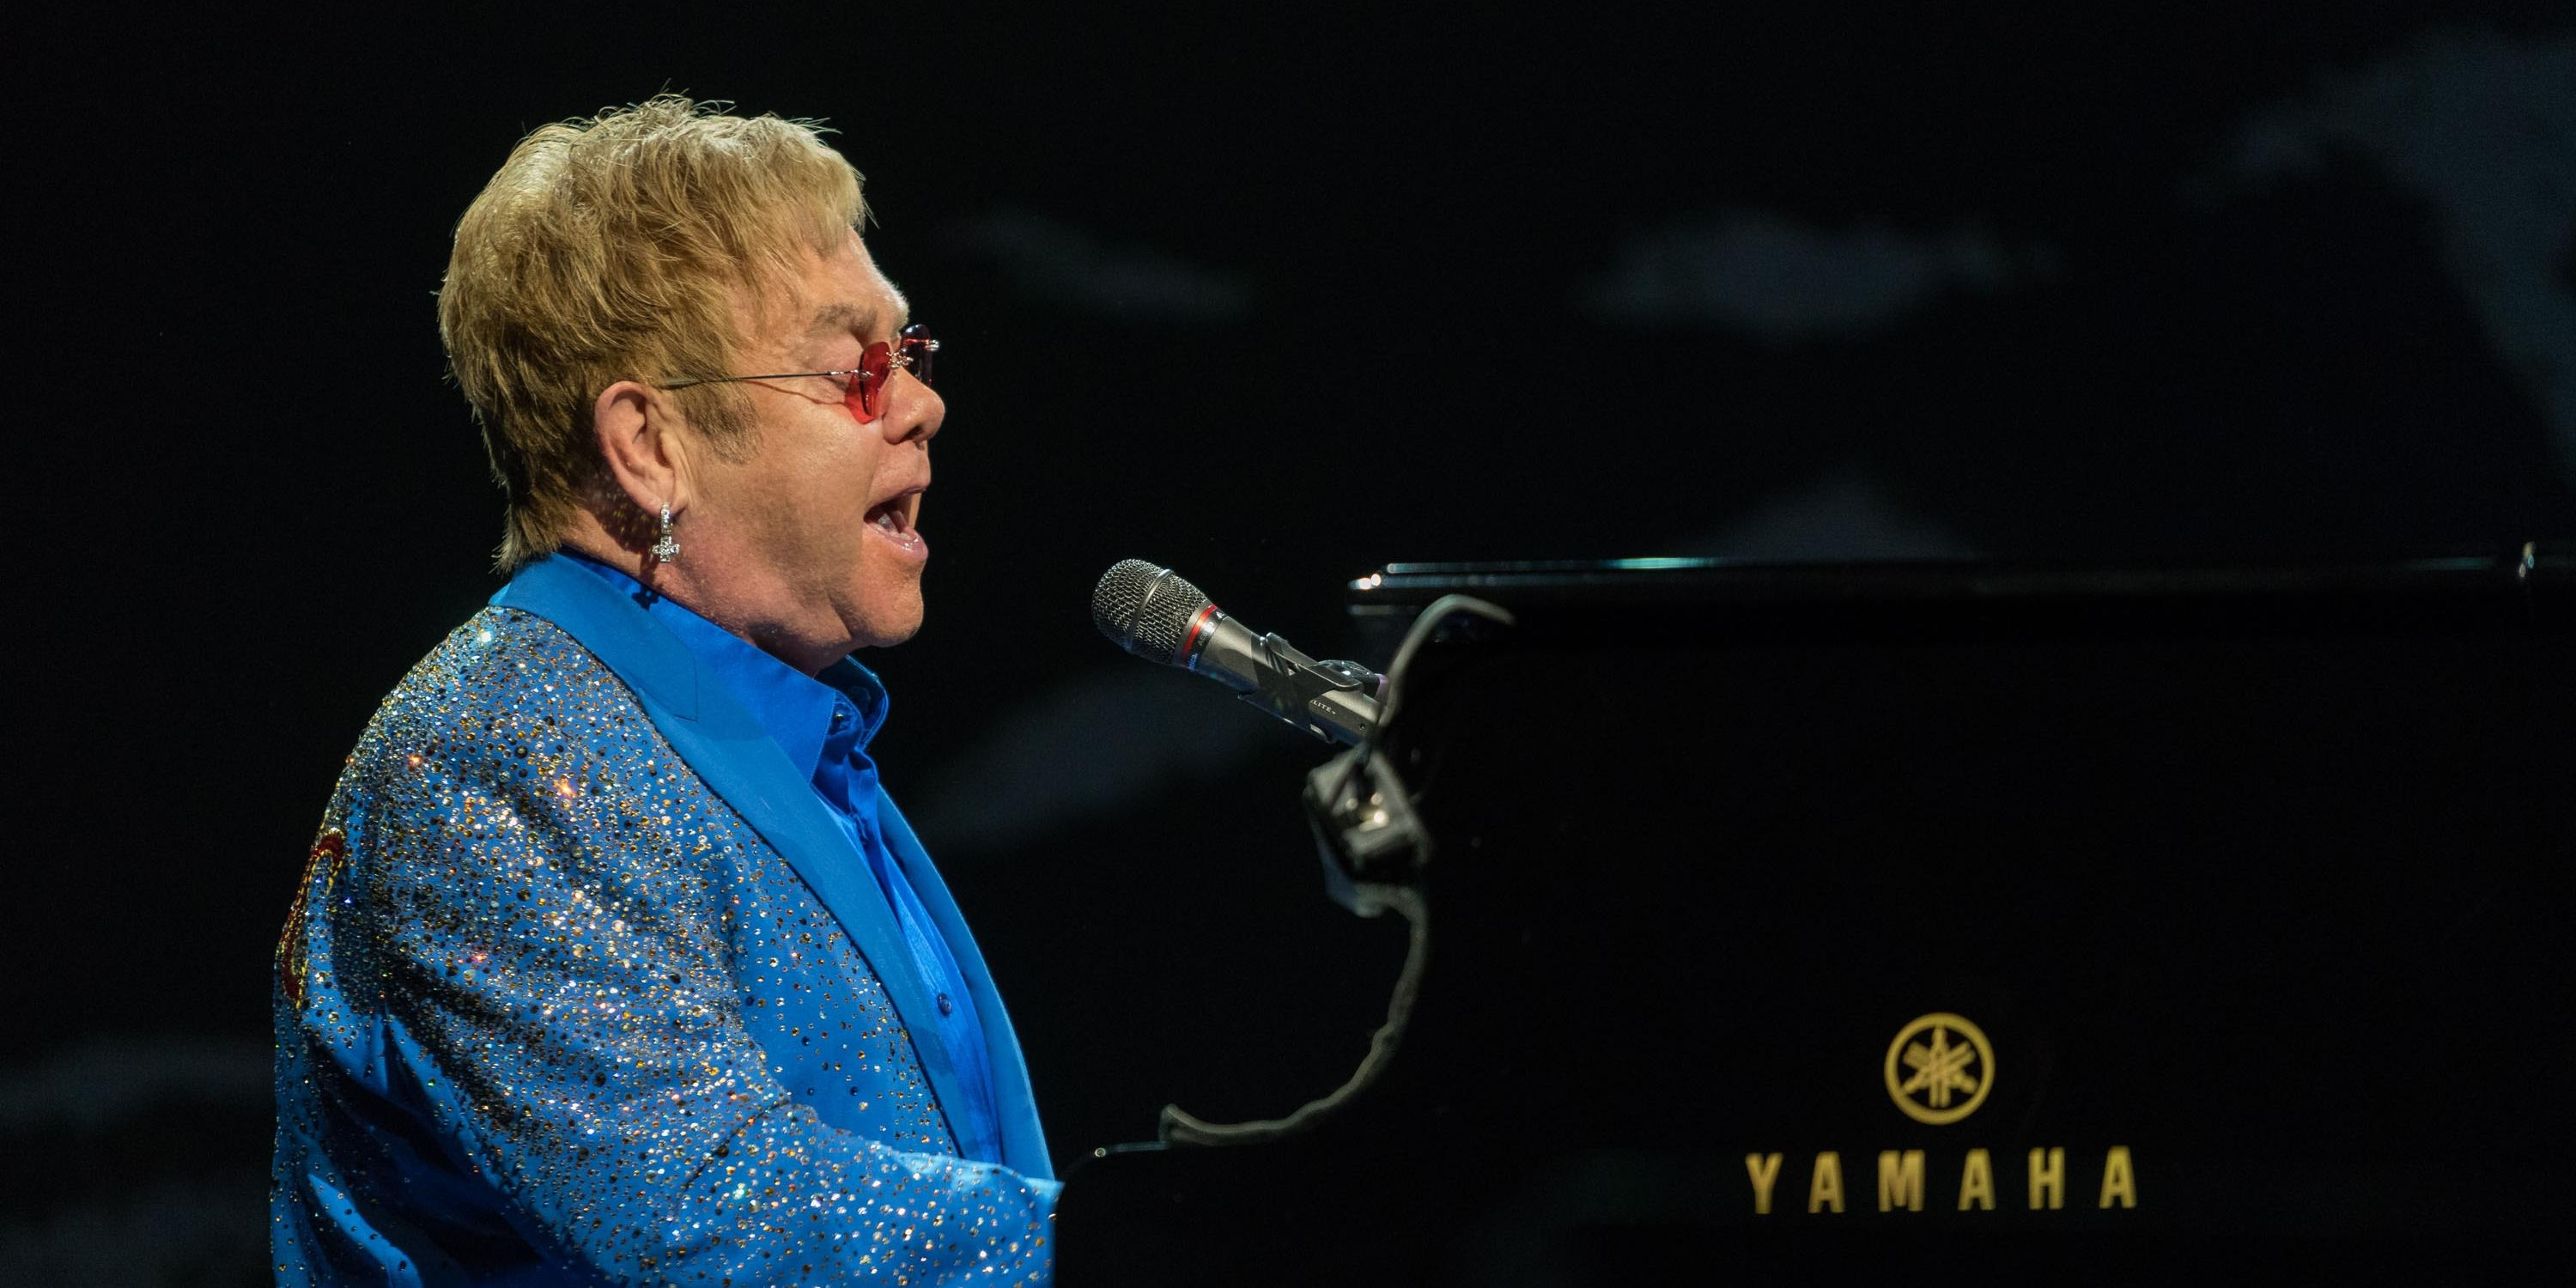 Elton John will retire from touring after playing more than 300 shows worldwide over 3 years